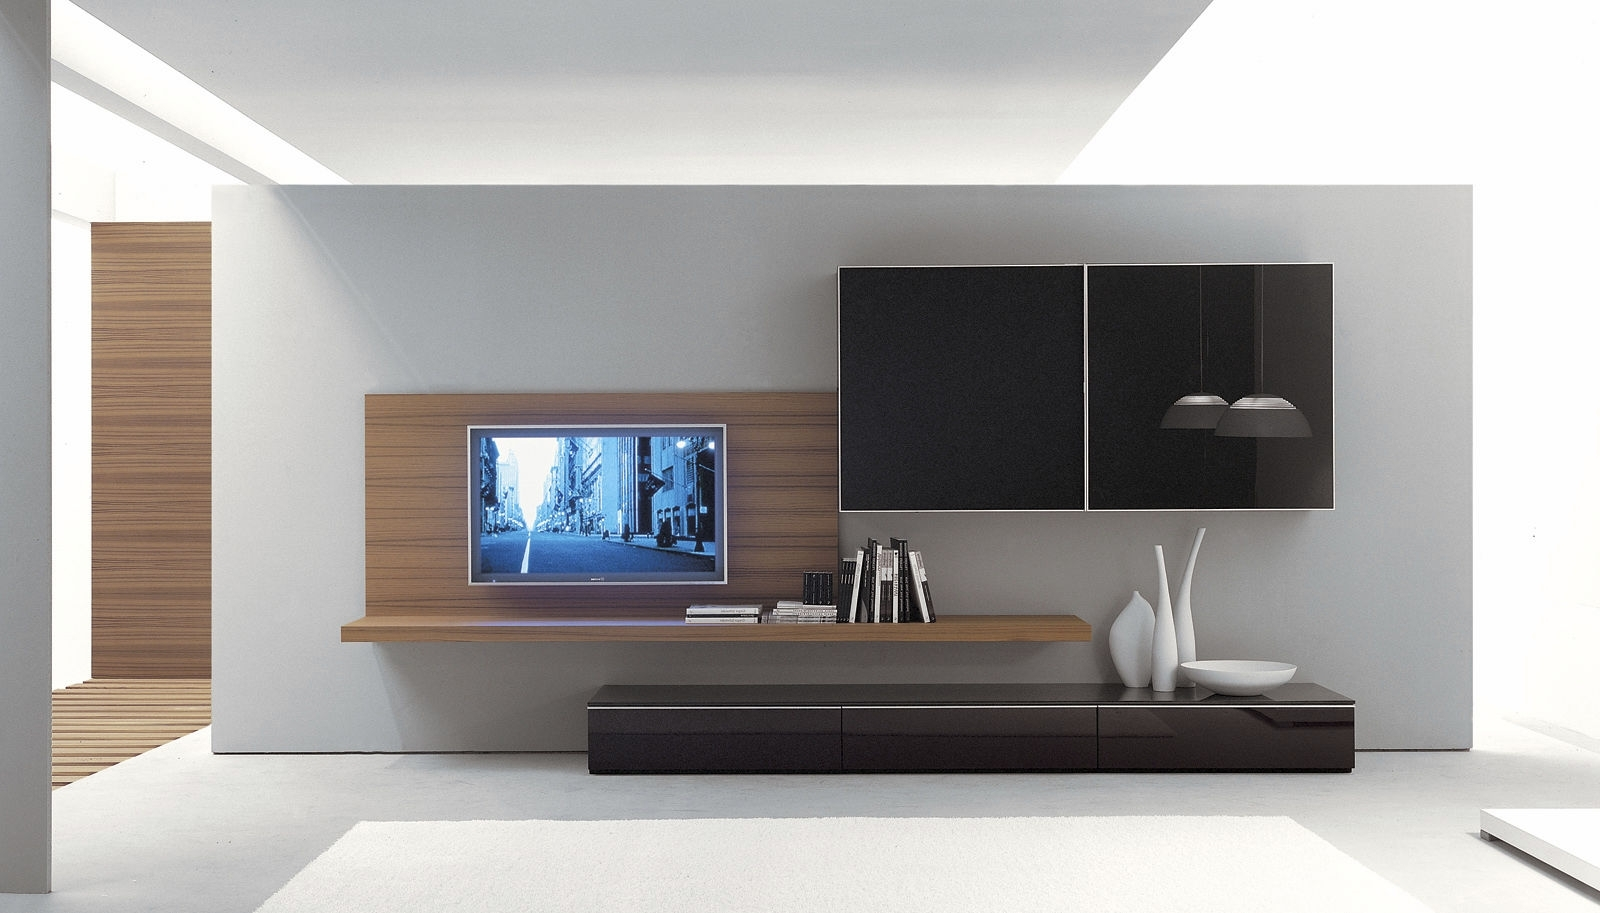 Well Known Contemporary Wall Units For Tv – Wall Units Design Ideas Within Modern Tv Wall Units (View 6 of 15)